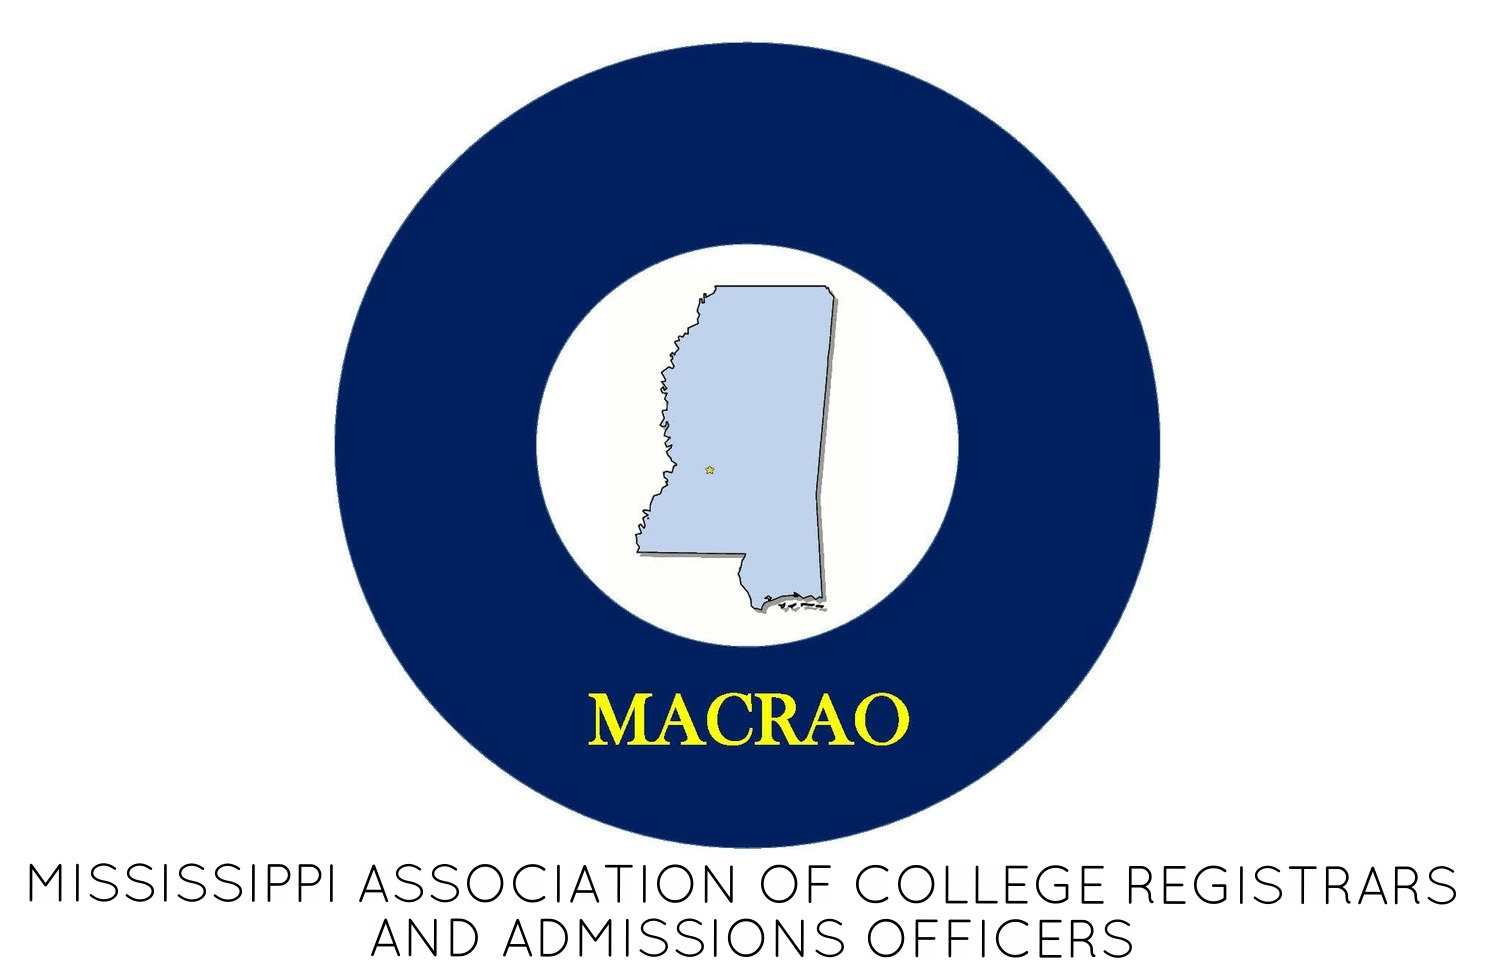 Mississippi Association of College Registrars and Admissions Officers